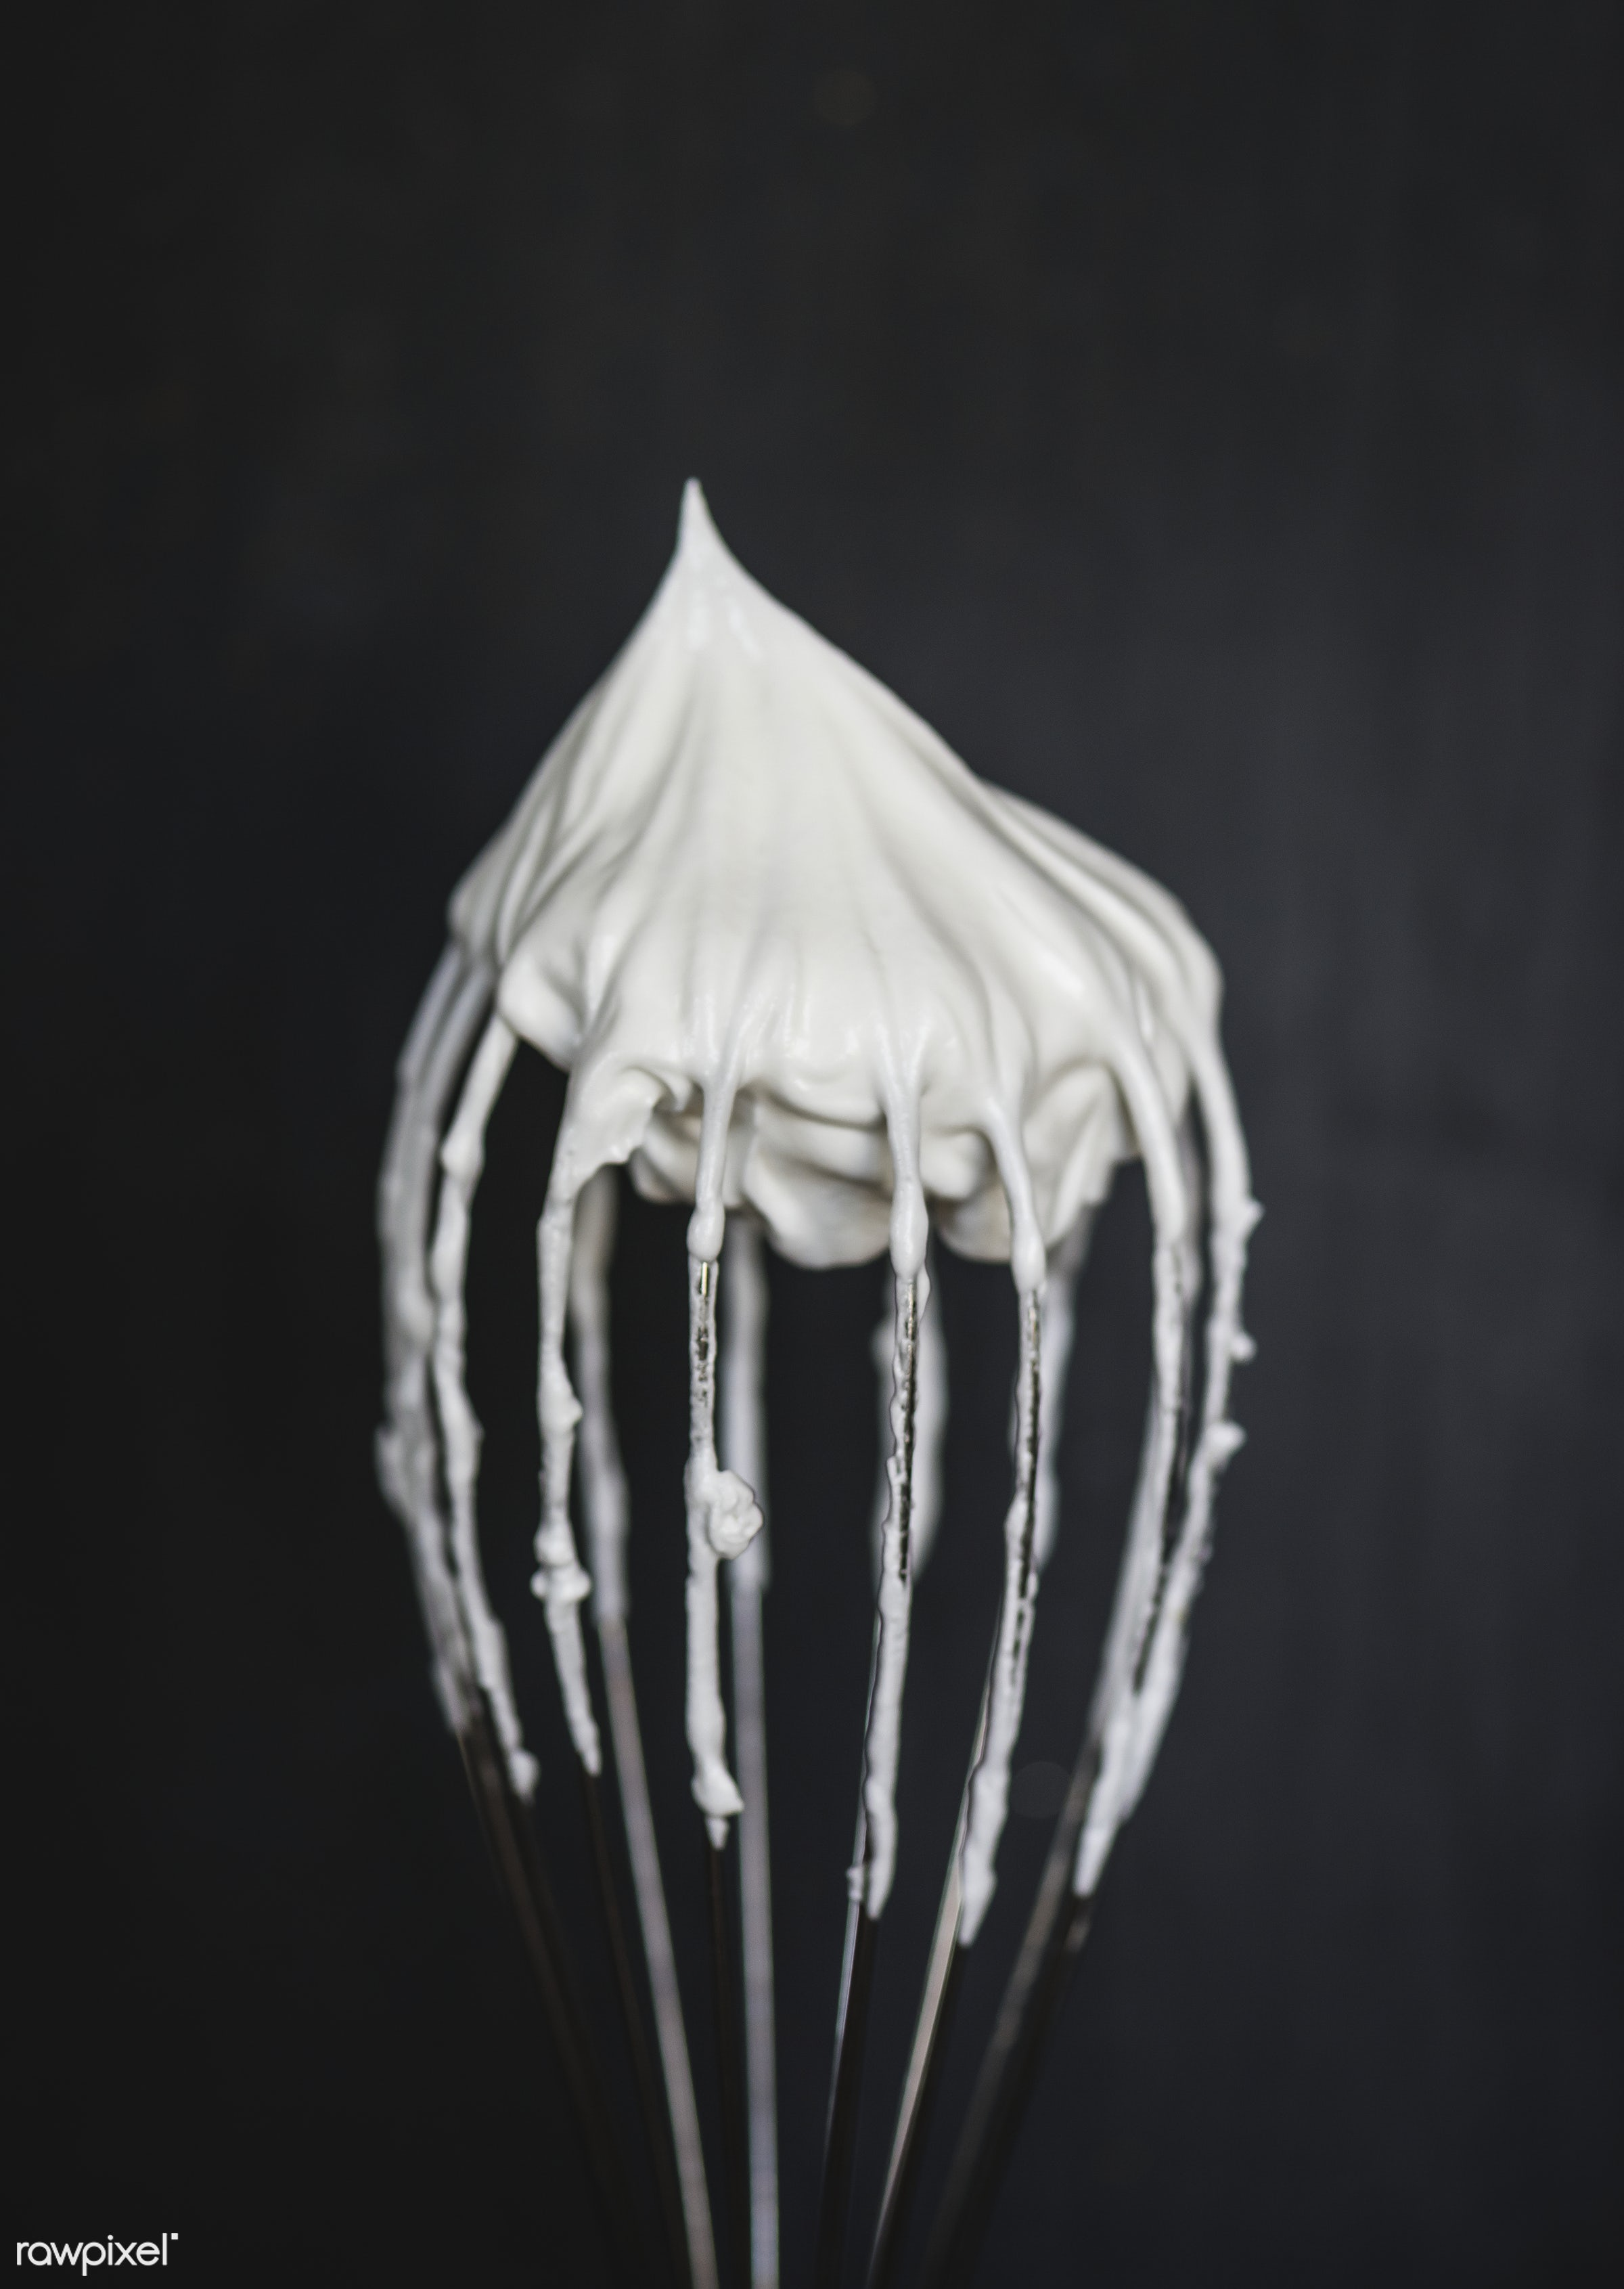 Close up of a wire whisk with whipped cream on top - ID: 415840